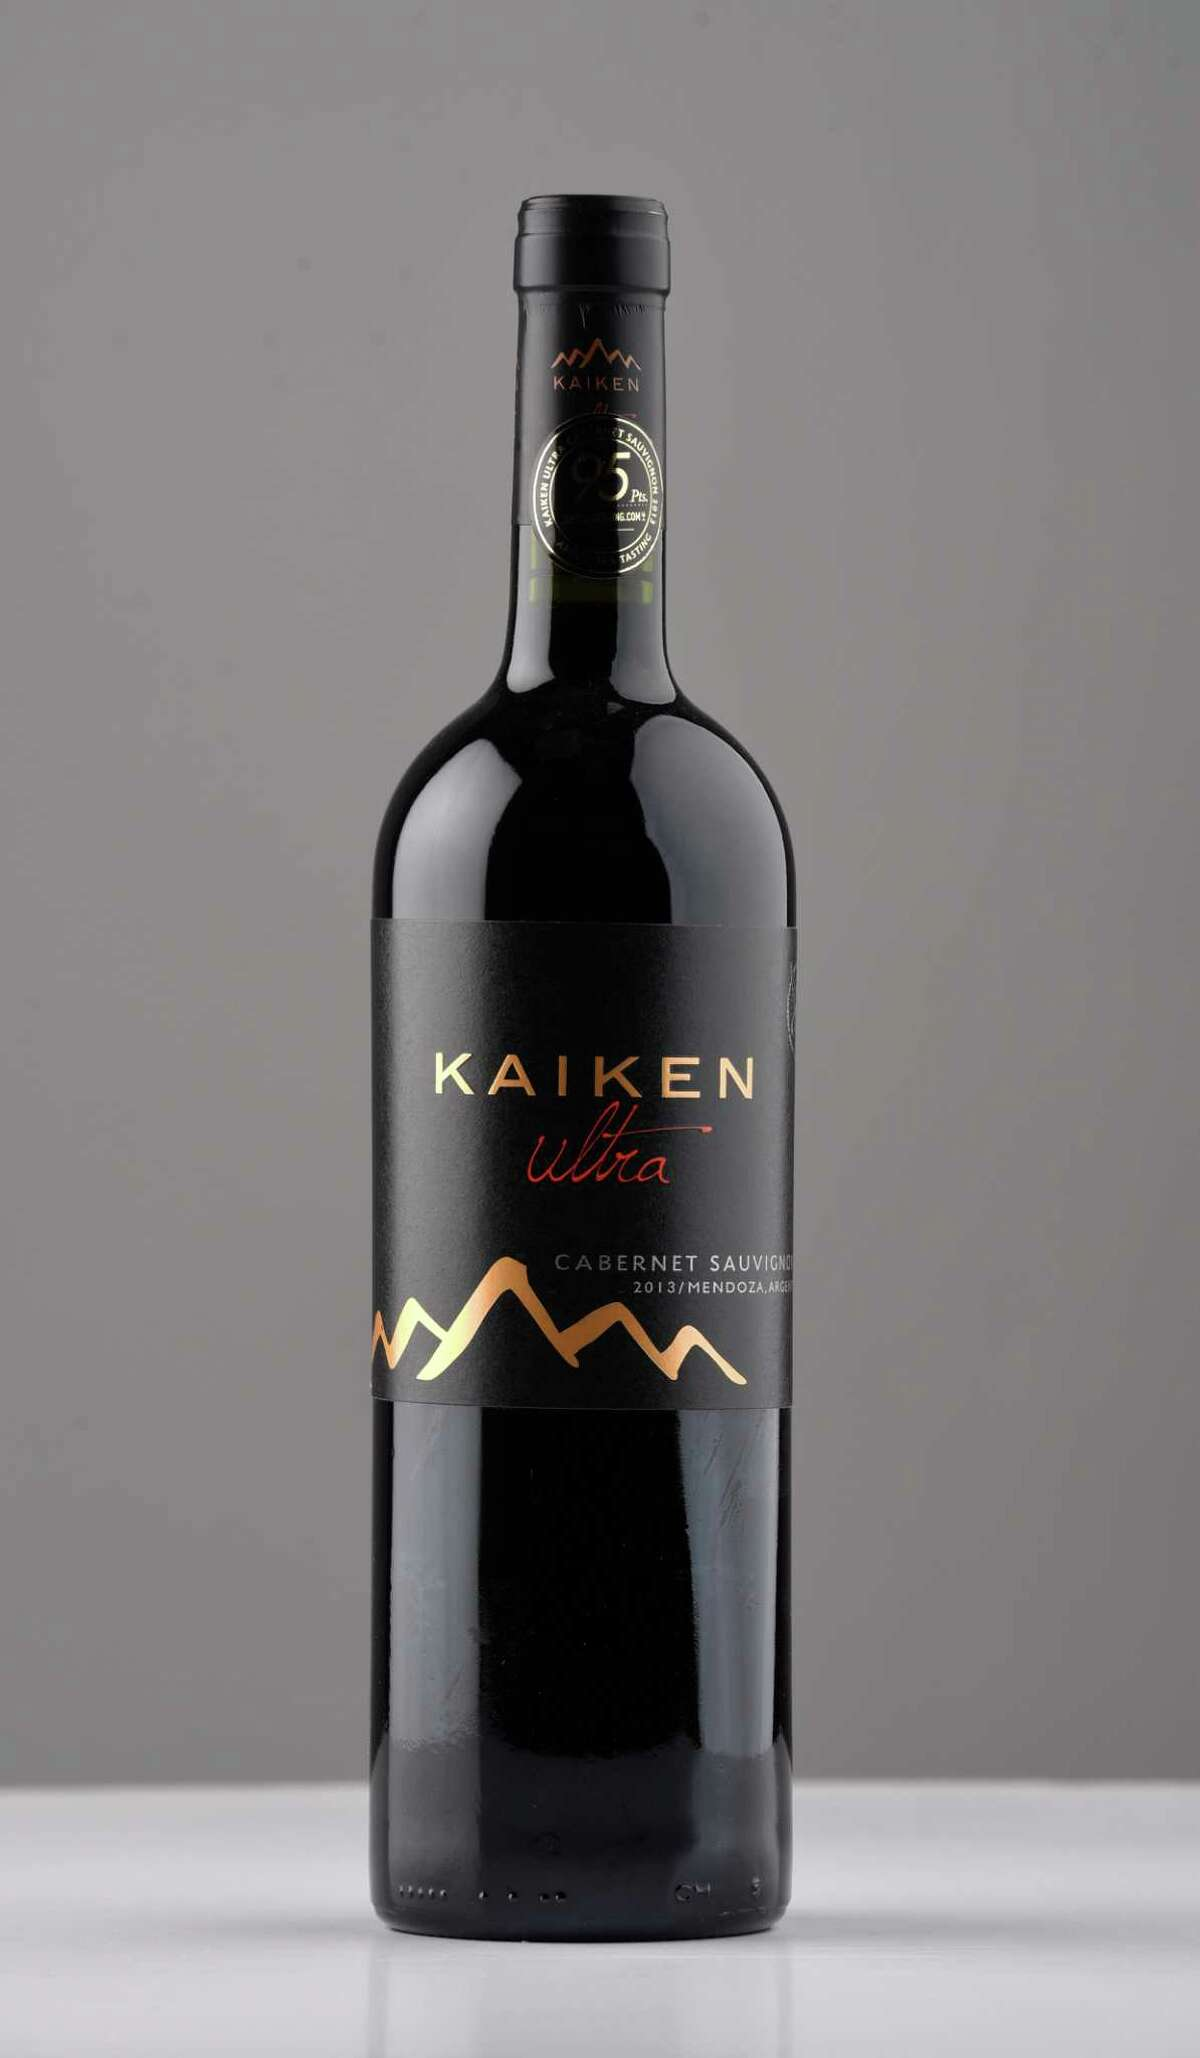 Kaiken Ultra, cabernet sauvignon 2013 on Wednesday, March 8, 2017, at the Times Union in Colonie, N.Y. (Will Waldron/Times Union)